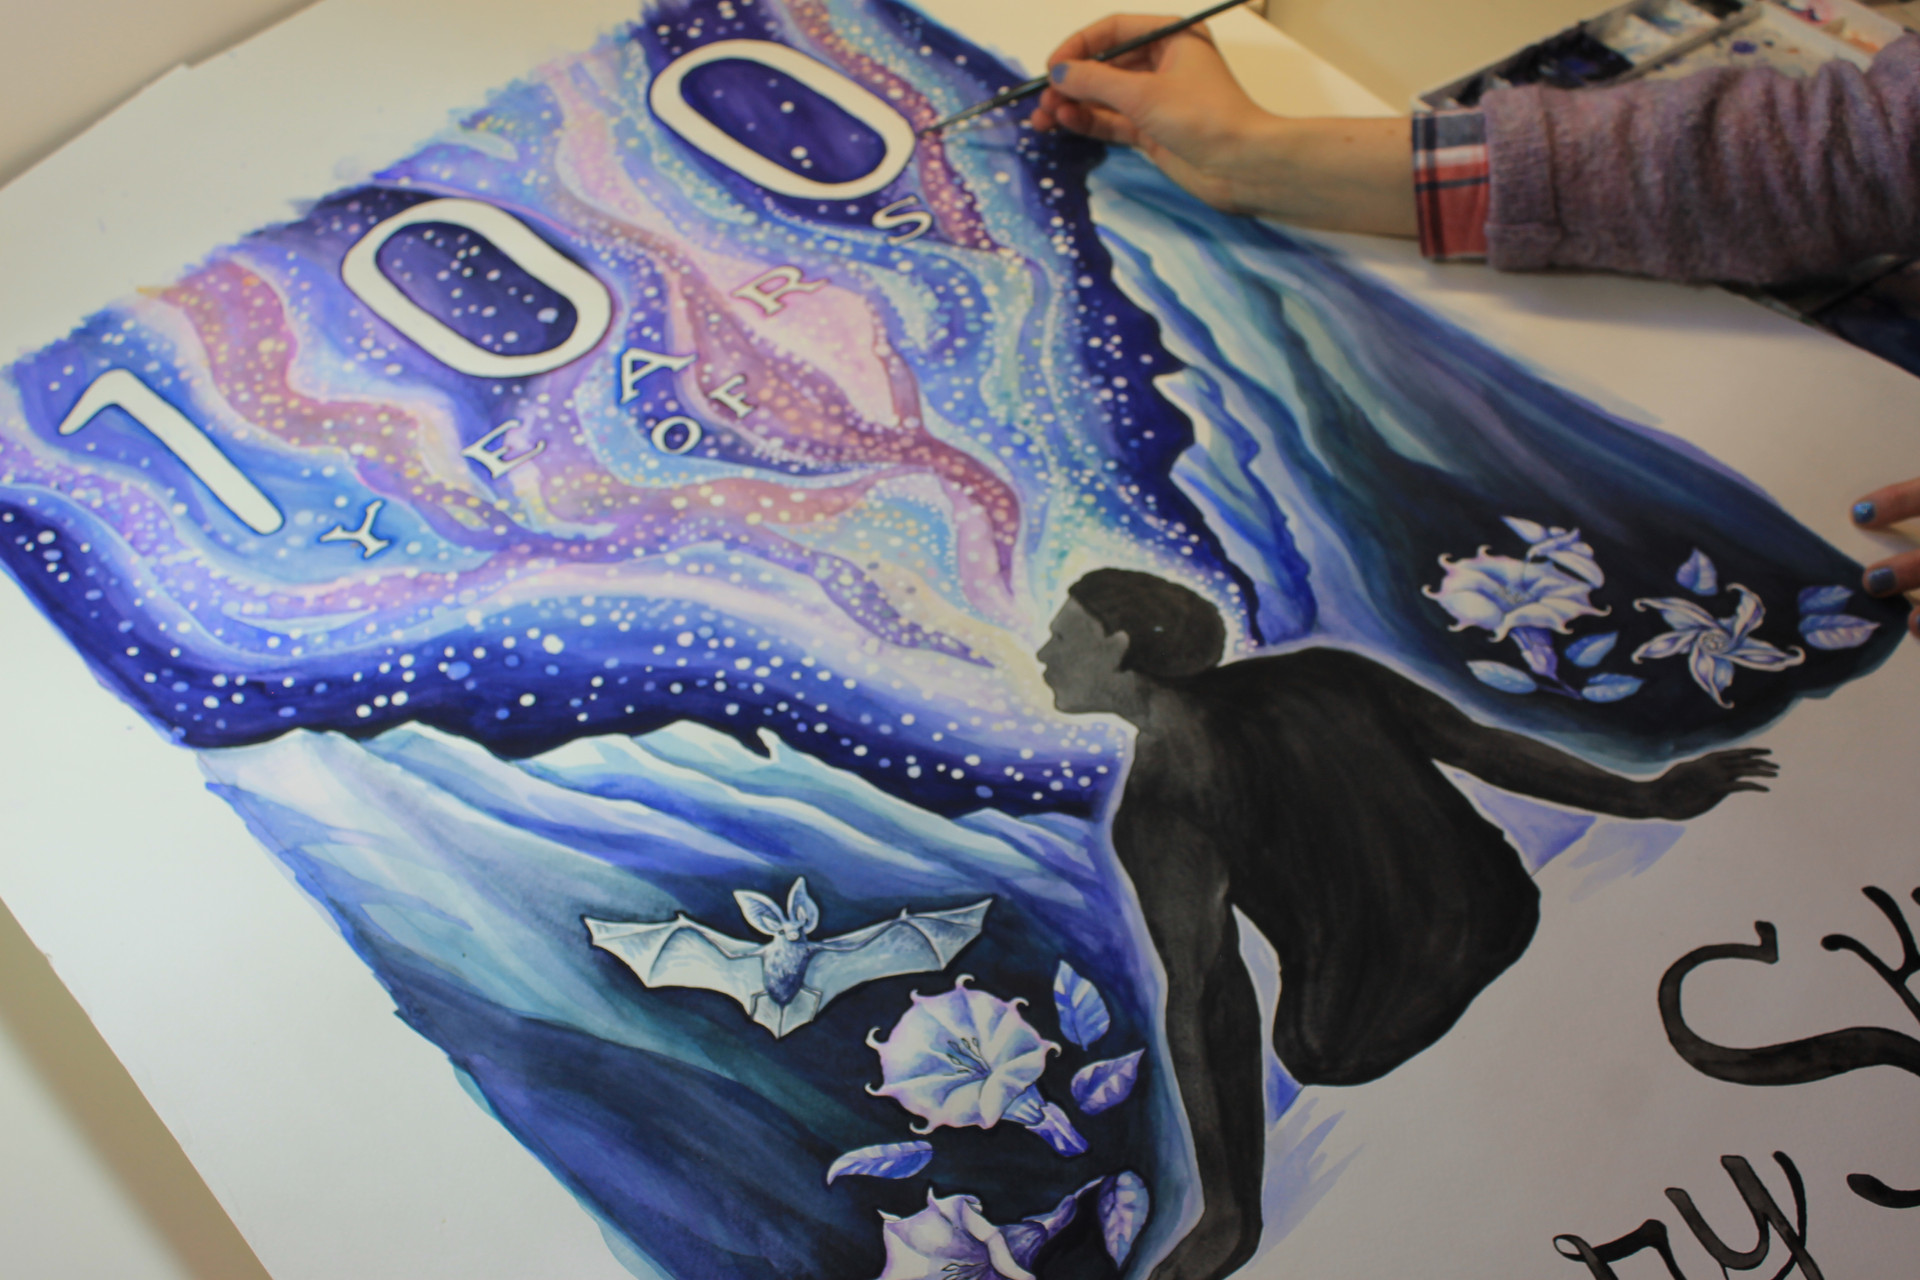 starry skies first draft